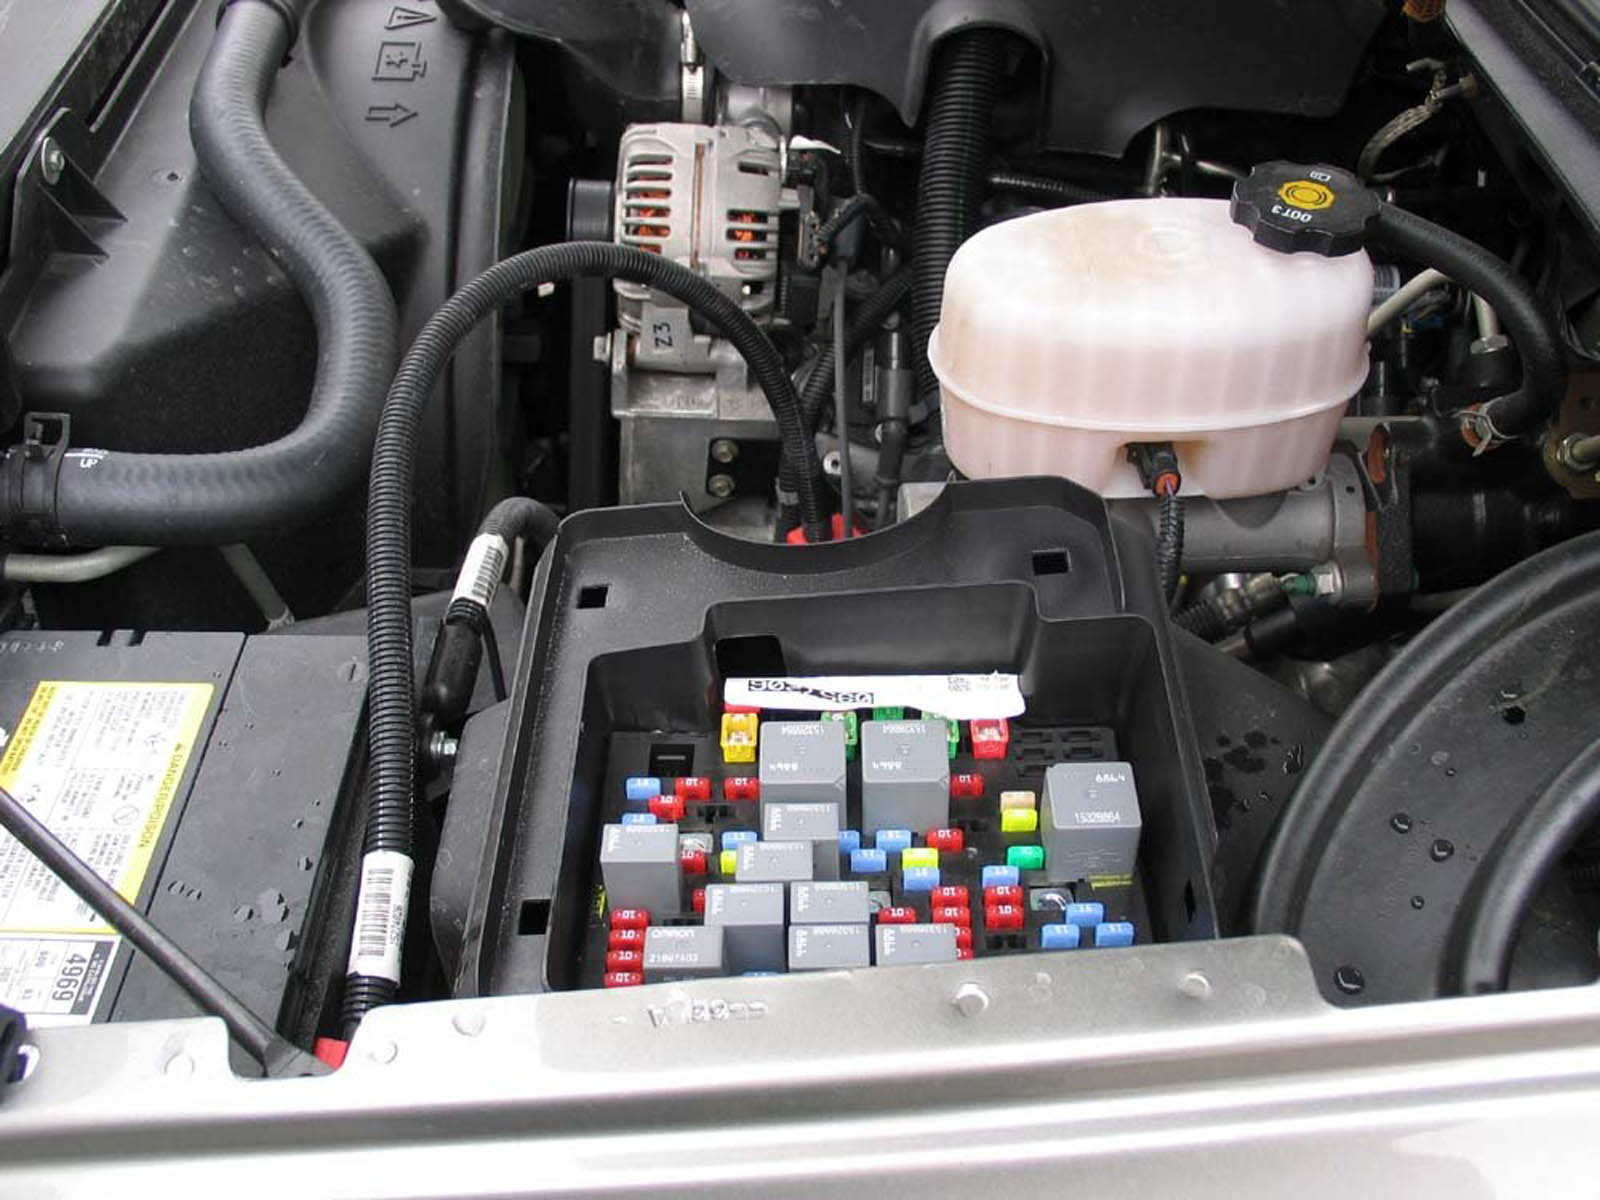 MMMay 27 Fuse Box 04 69845 chevrolet silverado gmt800 1999 2006 fuse box diagram chevroletforum 2005 chevy silverado fuse box diagram at virtualis.co